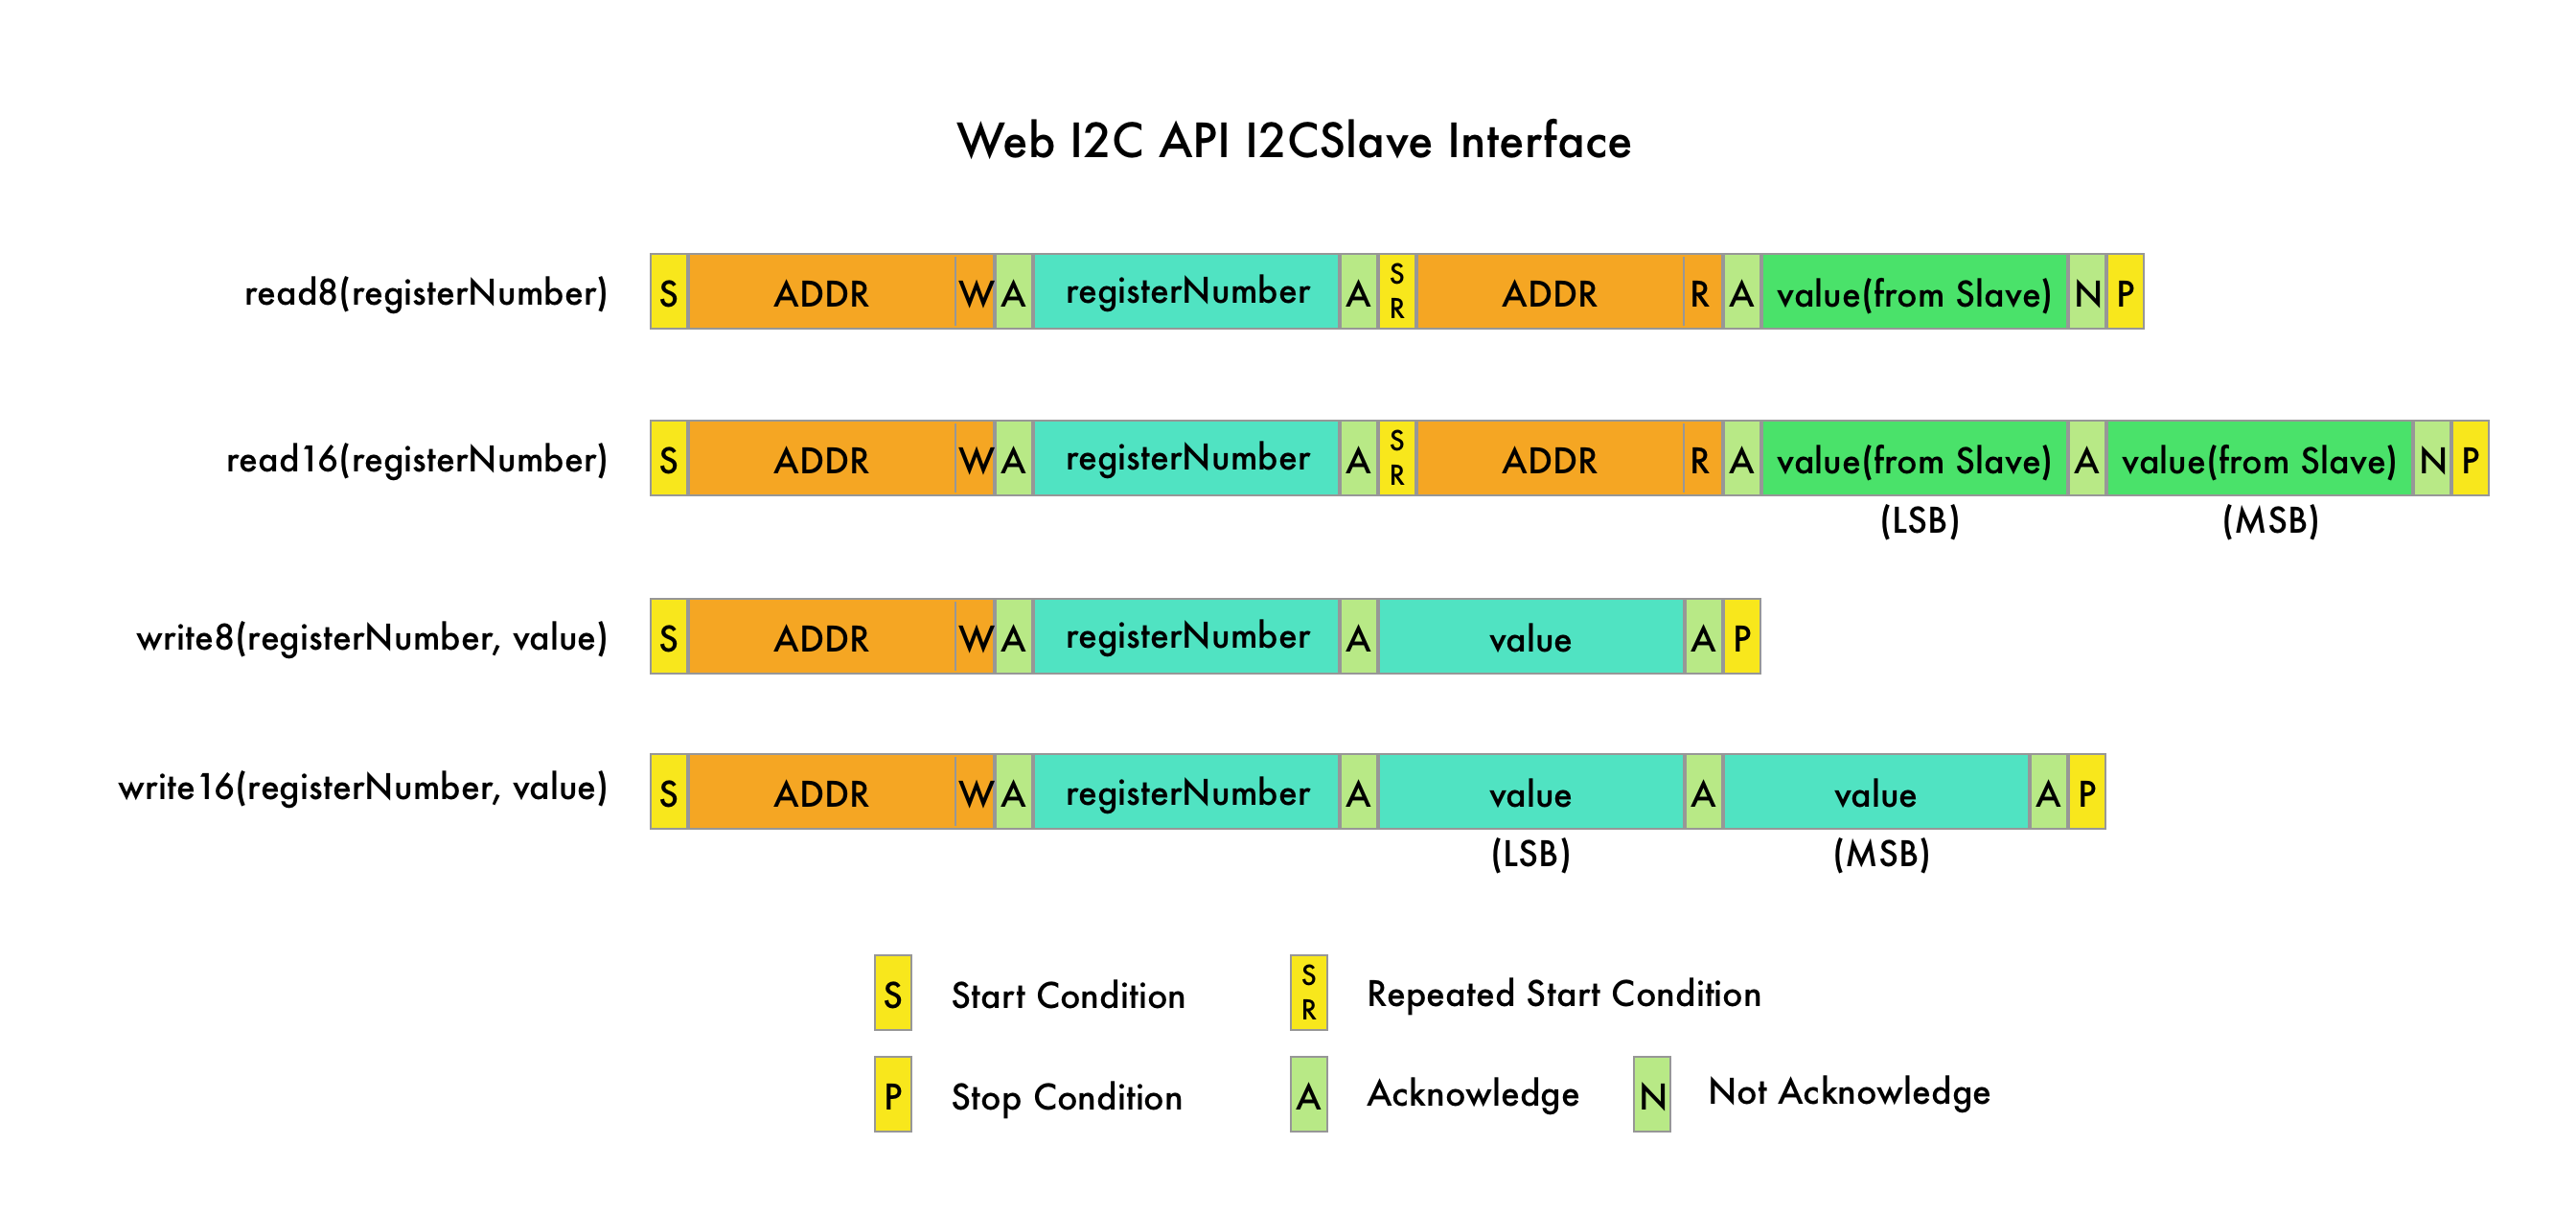 webI2c-I2CSlave-Interface@2x.png